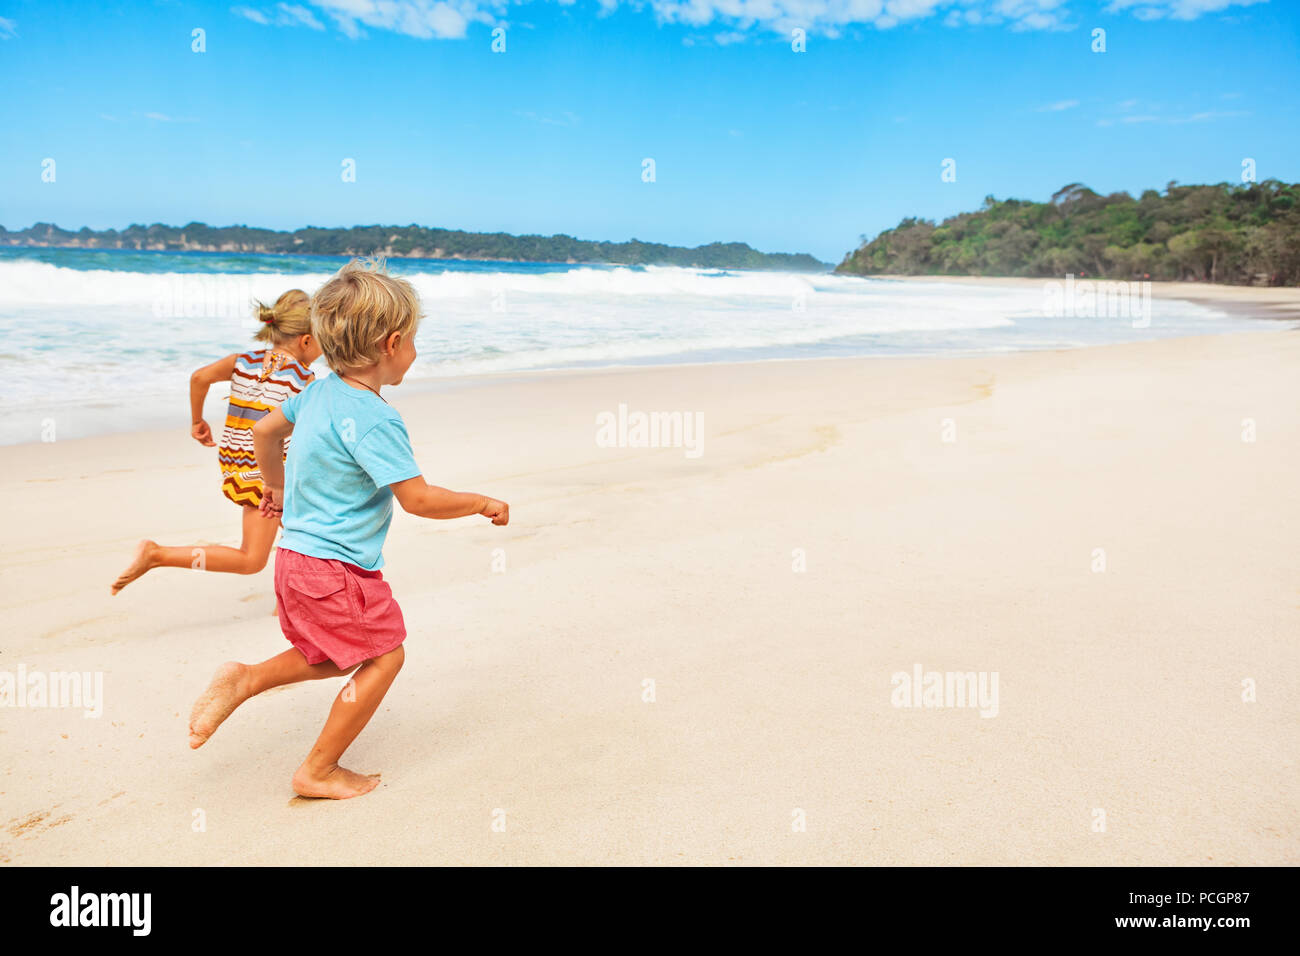 Happy barefoot kids have fun on beach walk. Run and jump by white sand along sea surf. Family travel lifestyle, outdoor sports activities and games. - Stock Image